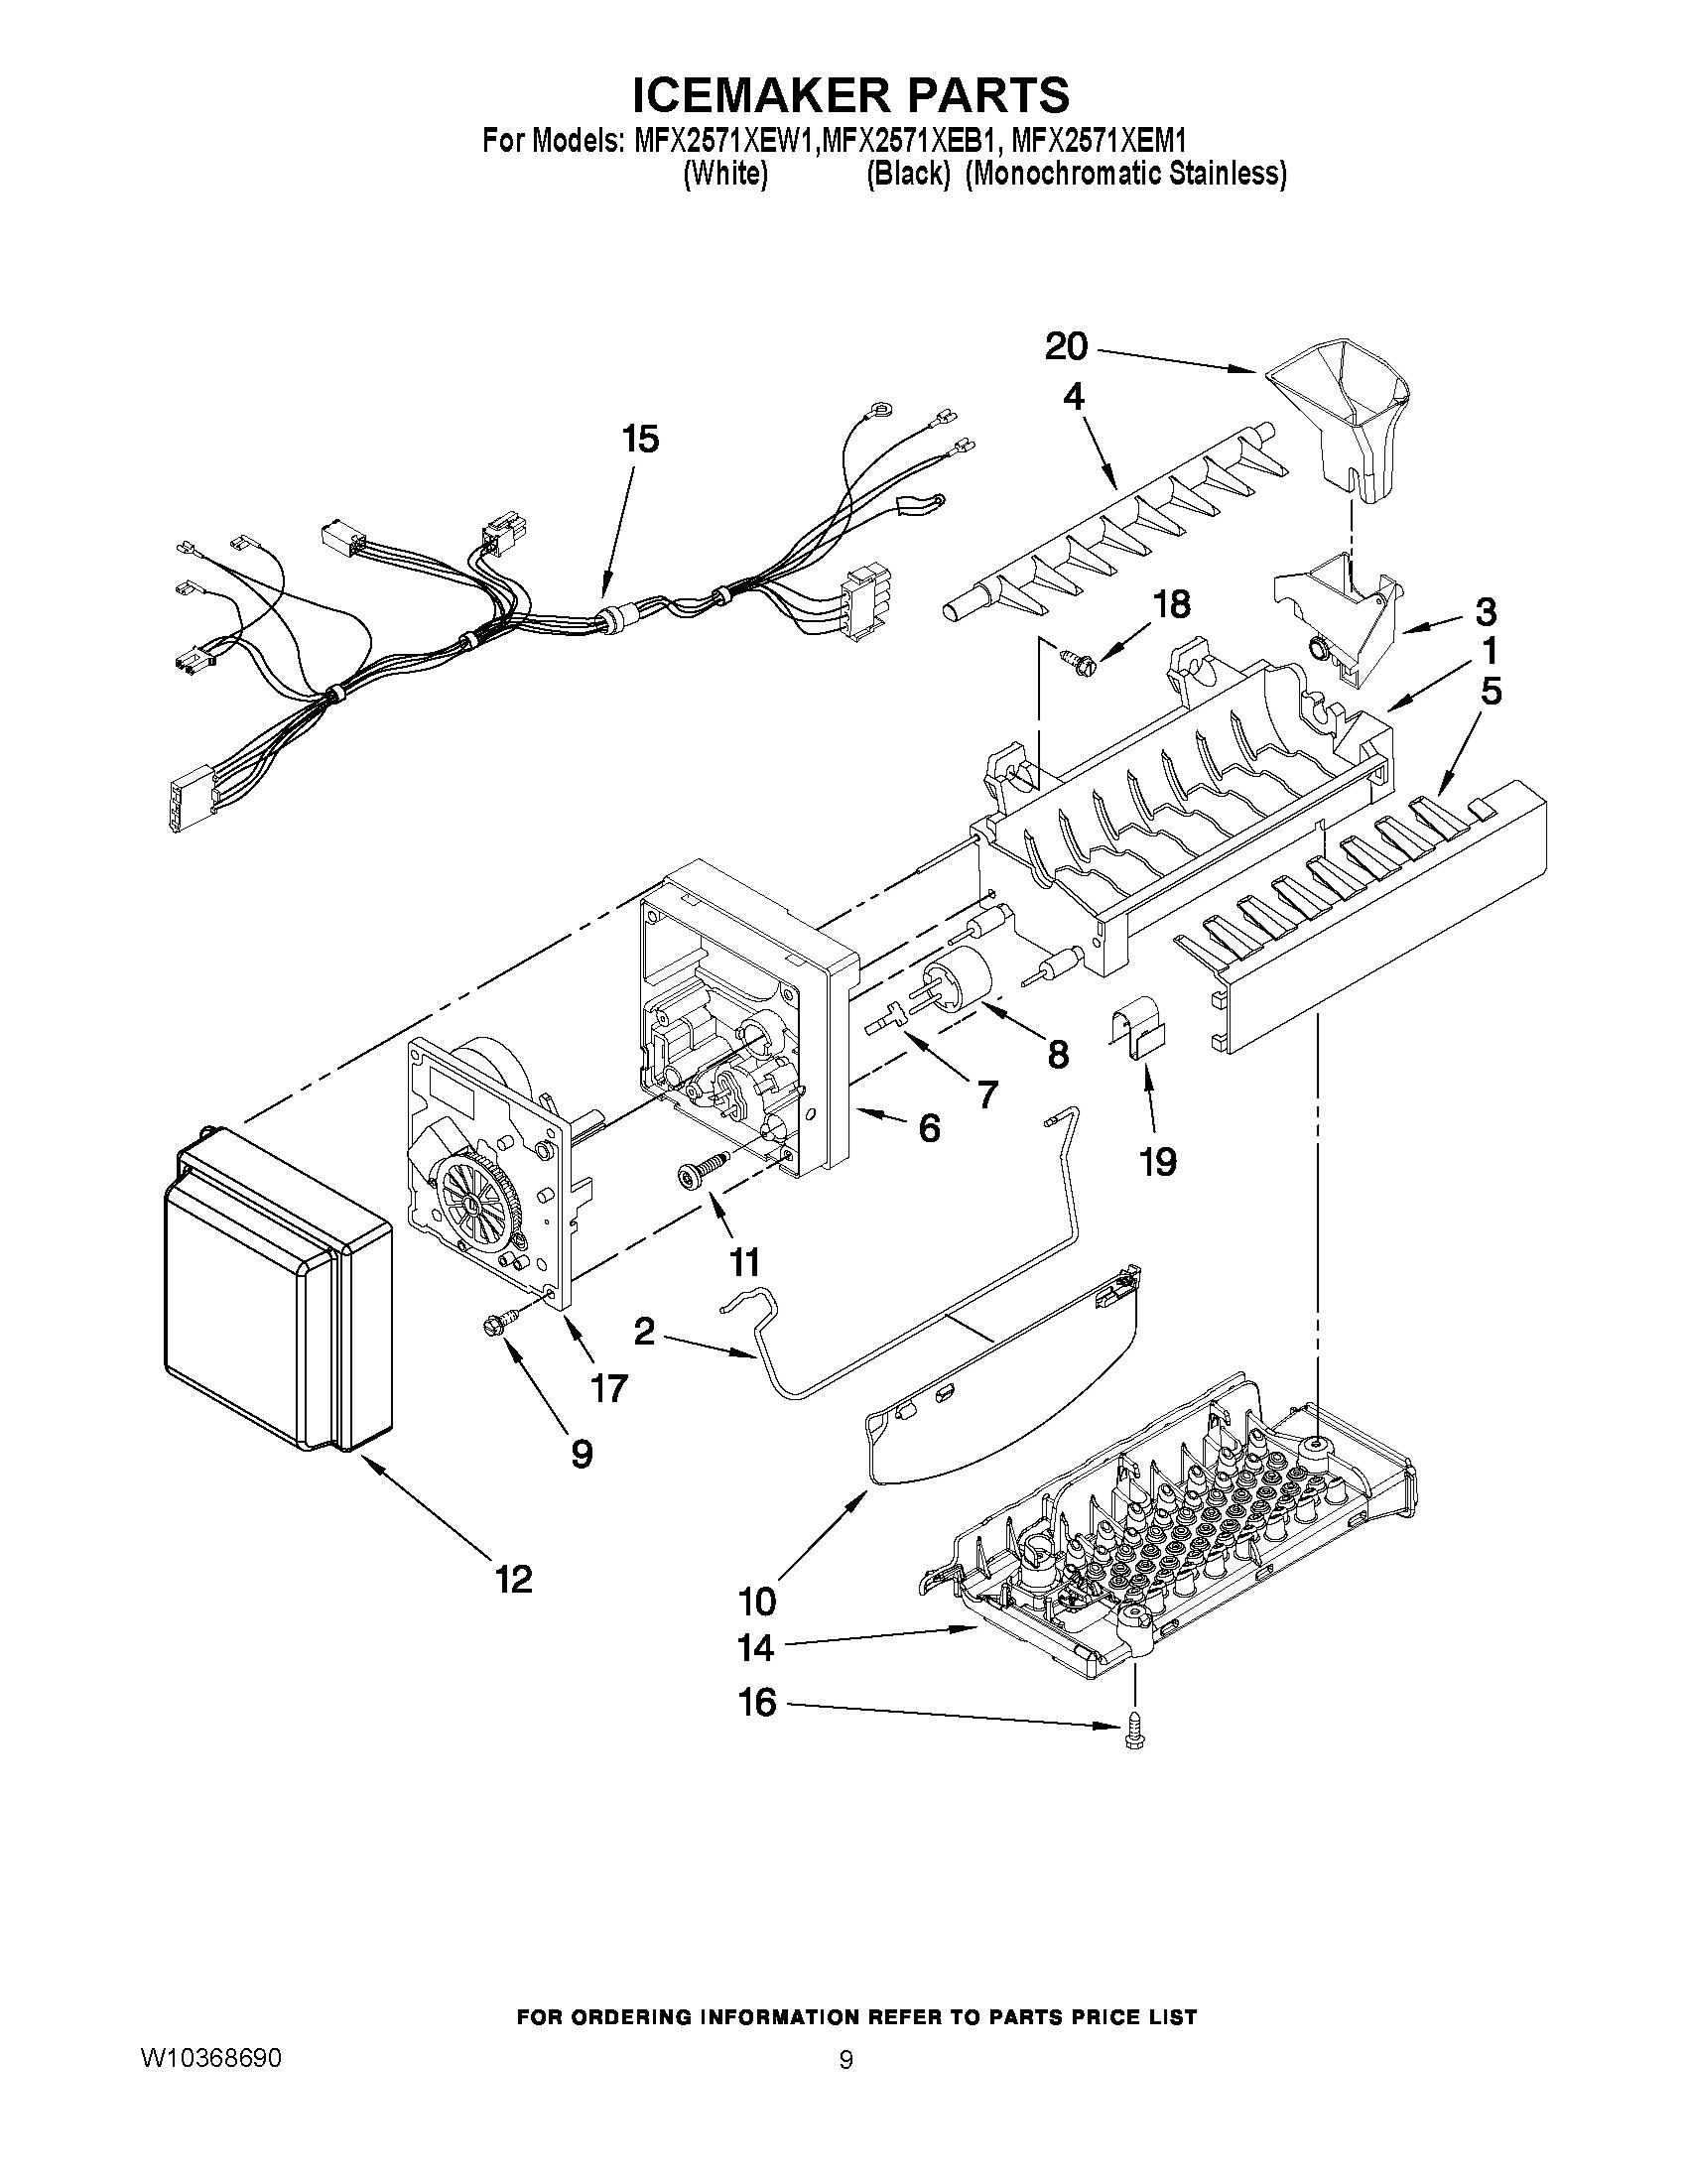 John Deere Lt150 Oil Filter Wiring Diagrams in addition Ford 3000 Charging System Wiring Diagram in addition Ford 1900 Tractor Parts Diagram Pump together with 1959 641 Workmaster Wiring Diagram also Arnold Tractor Ignition Switch Wiring Diagram. on oliver 550 tractor wiring diagram